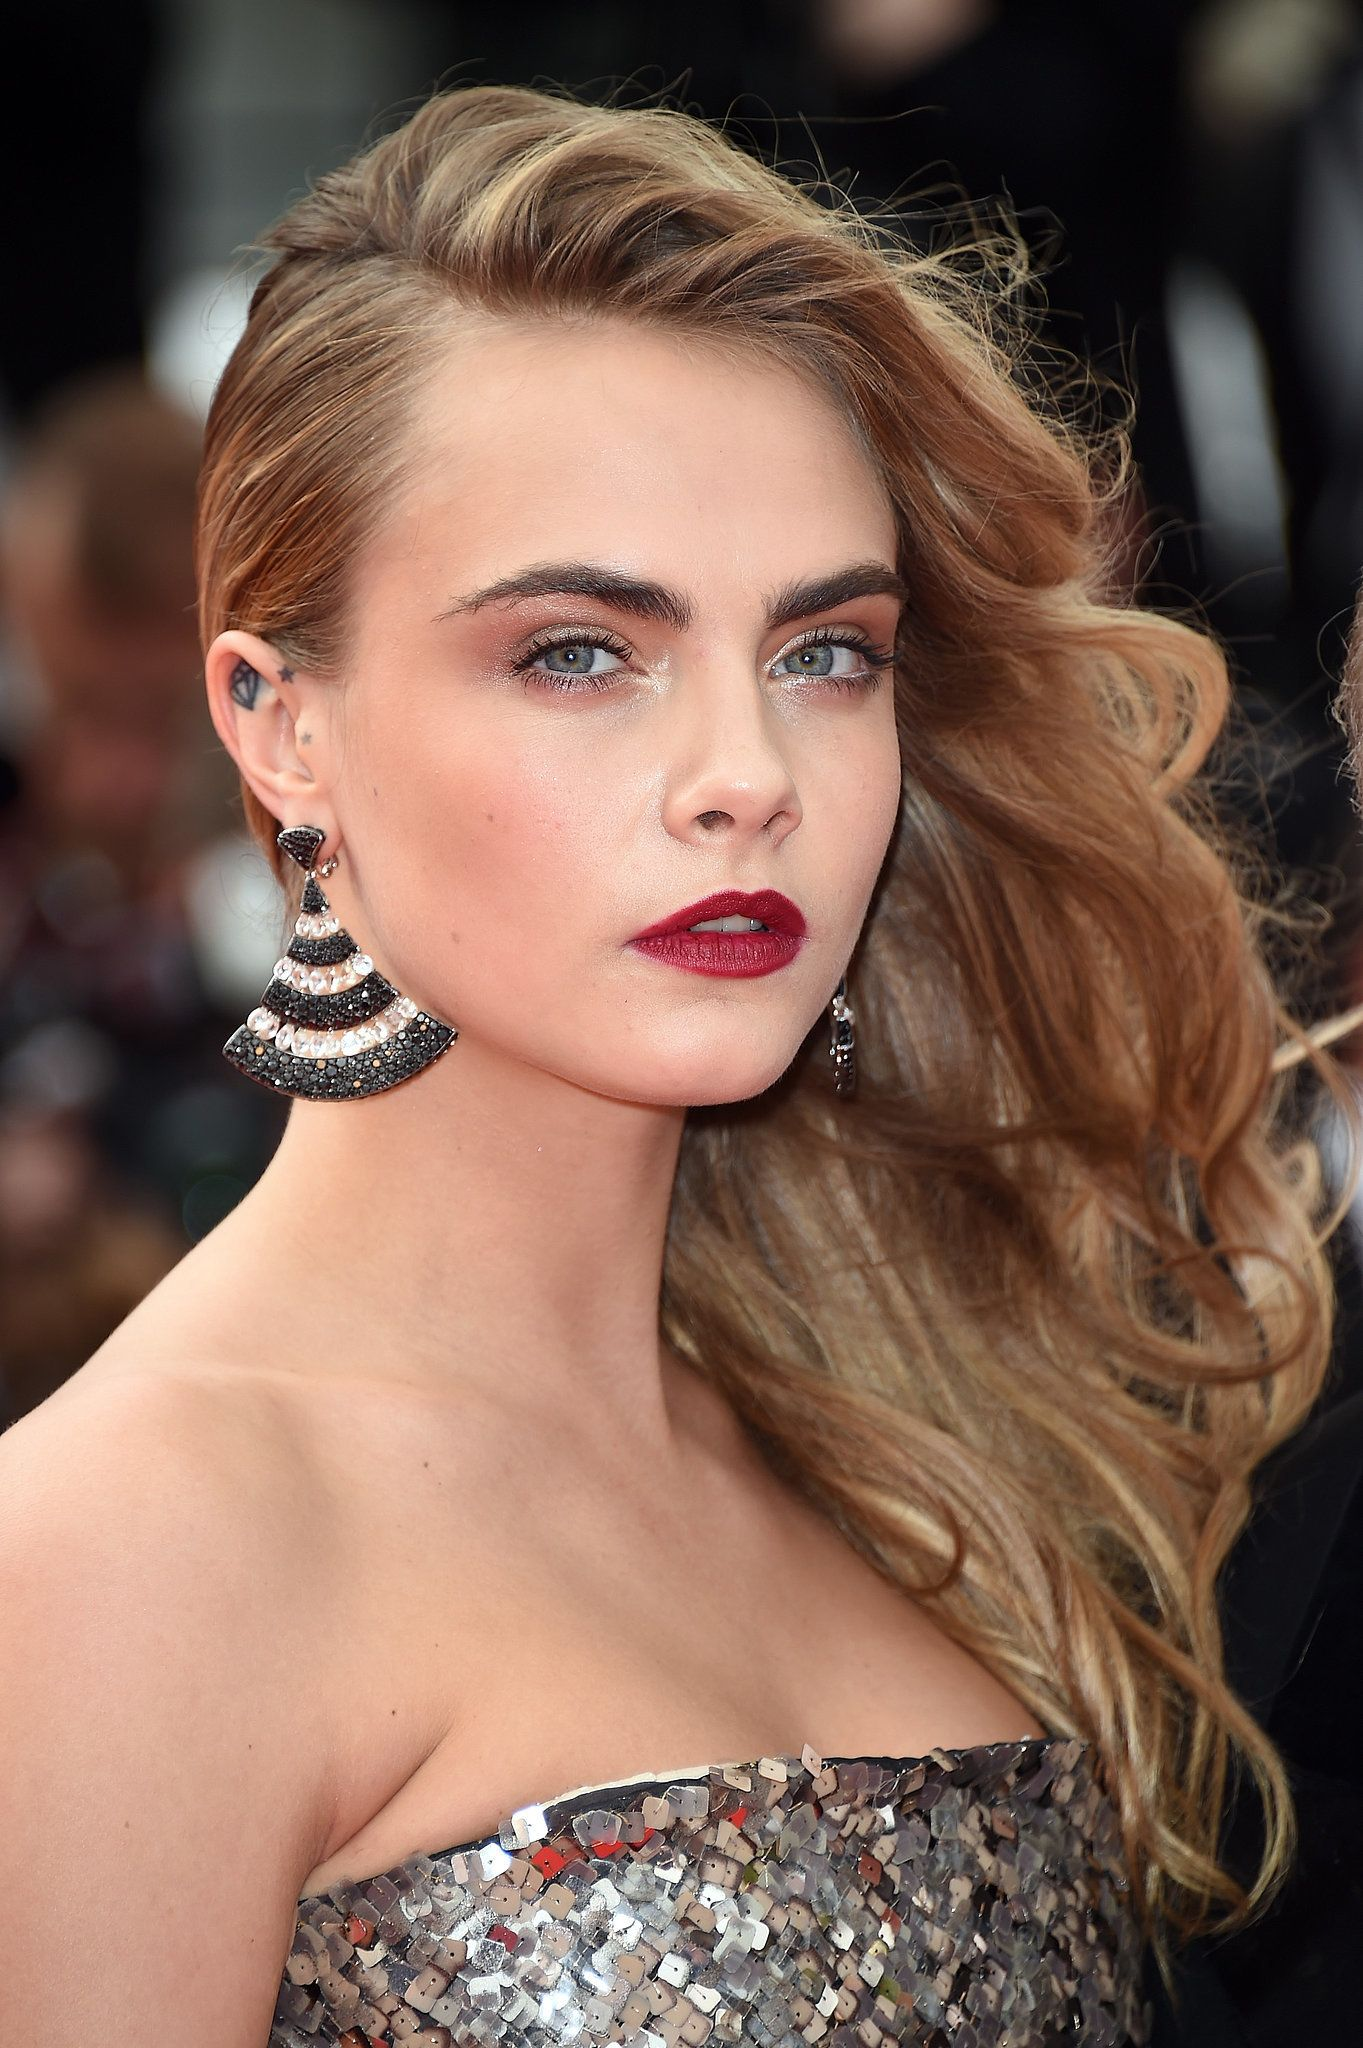 Cara Delevingne Red Lip Makeup Inspirations Hair Hair Styles